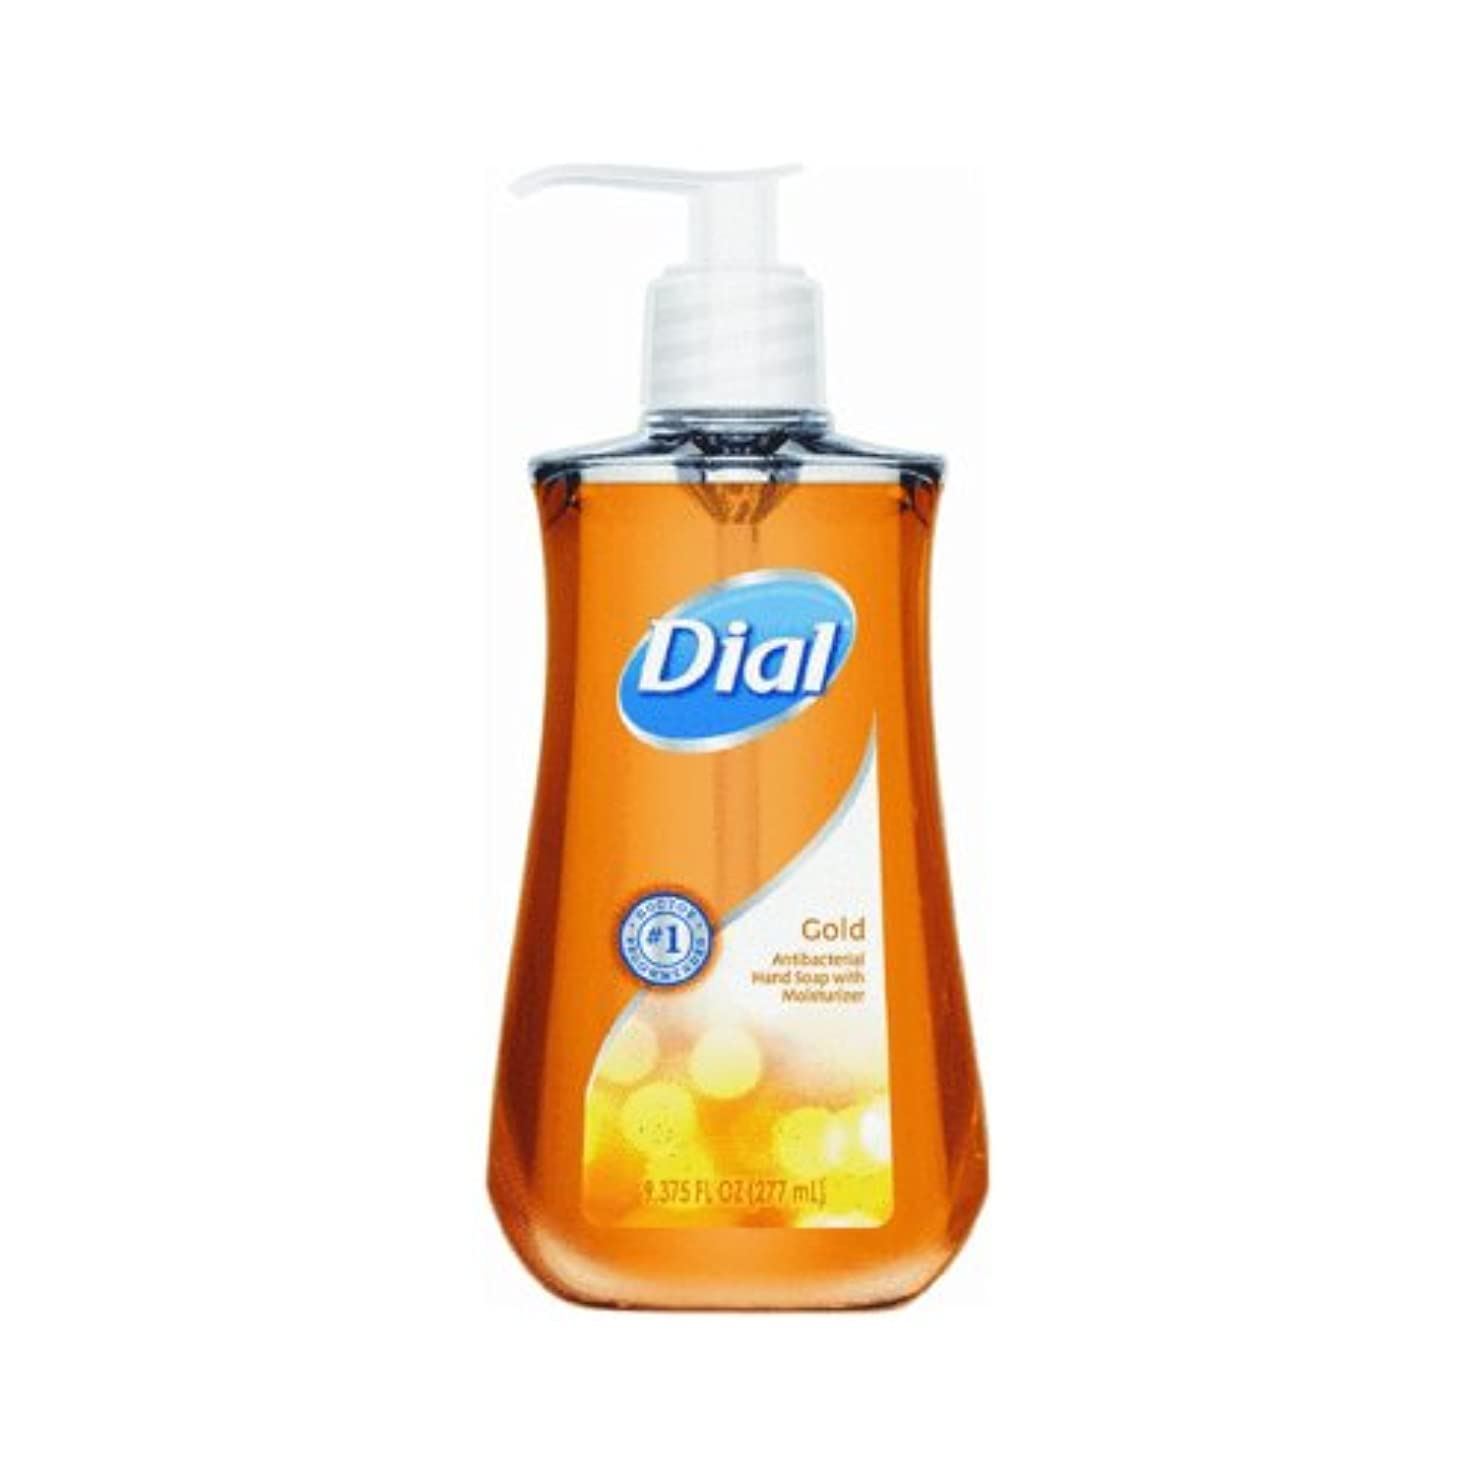 Dial Antibacterial Hand Soap, Gold with Moisturizer 280 ml (Pack of 12) (並行輸入品)